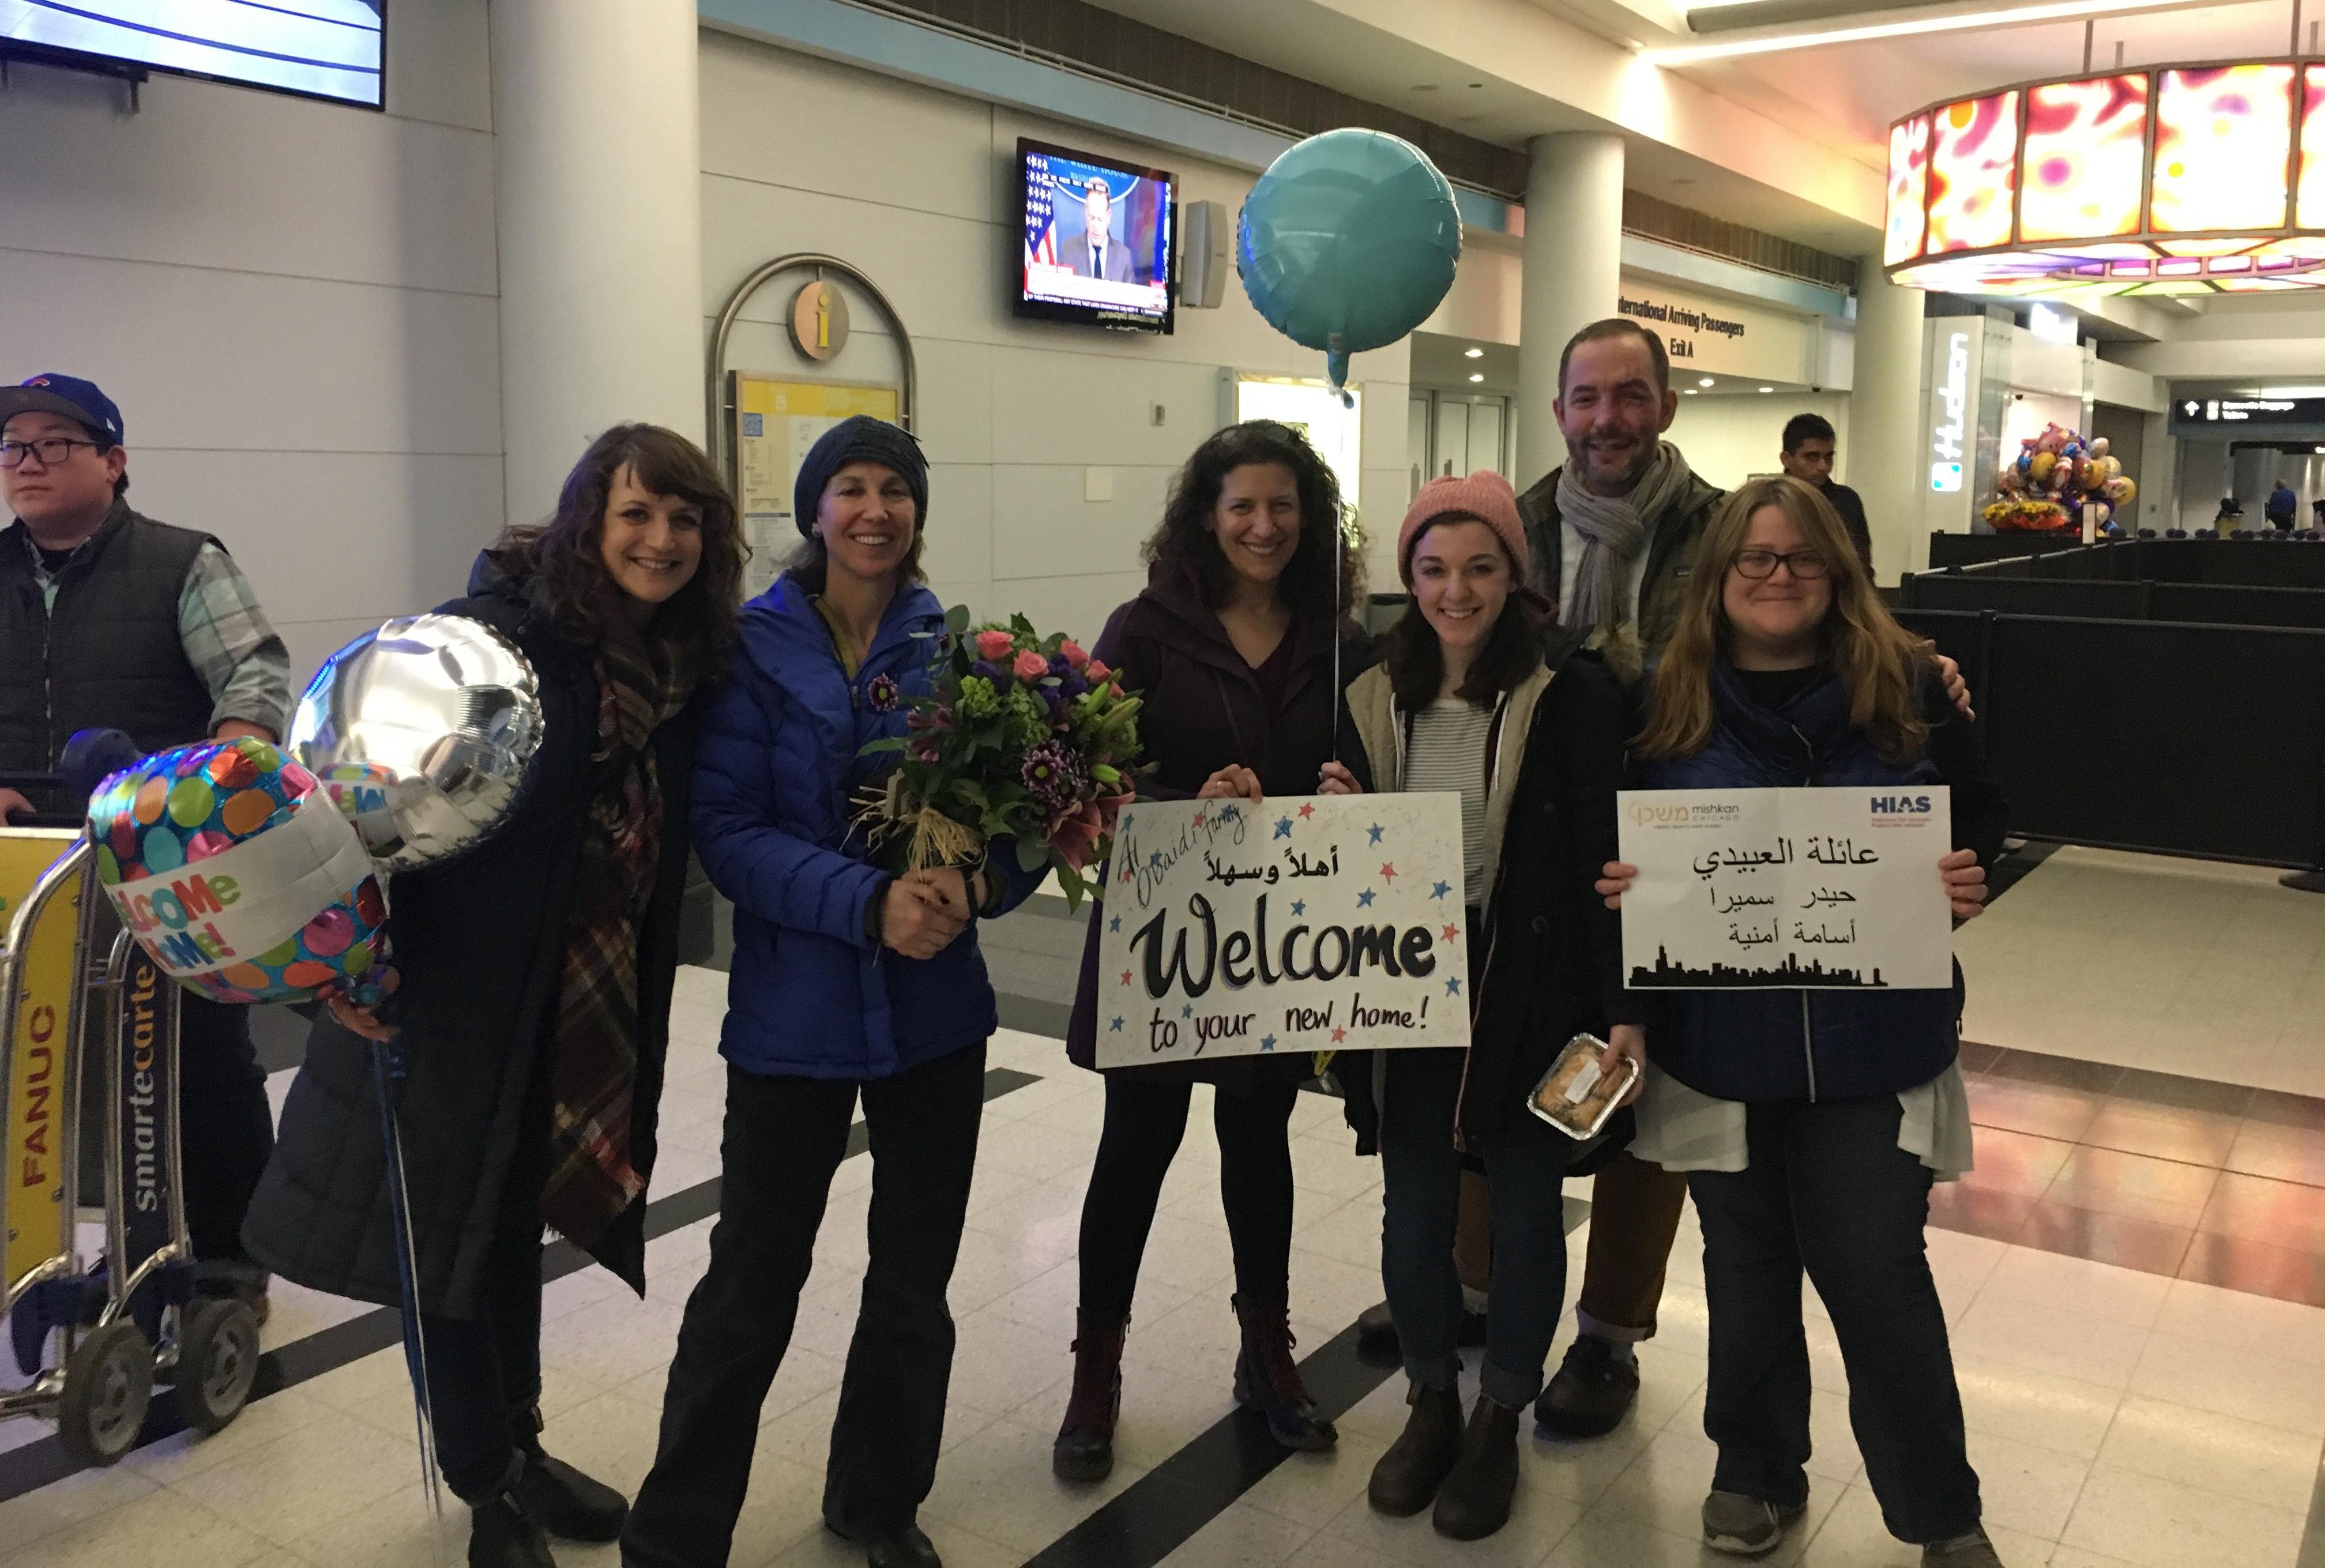 Members of Mishkan Chicago wait for the Al-Obaidis to arrive at O'hare on Jan. 24.